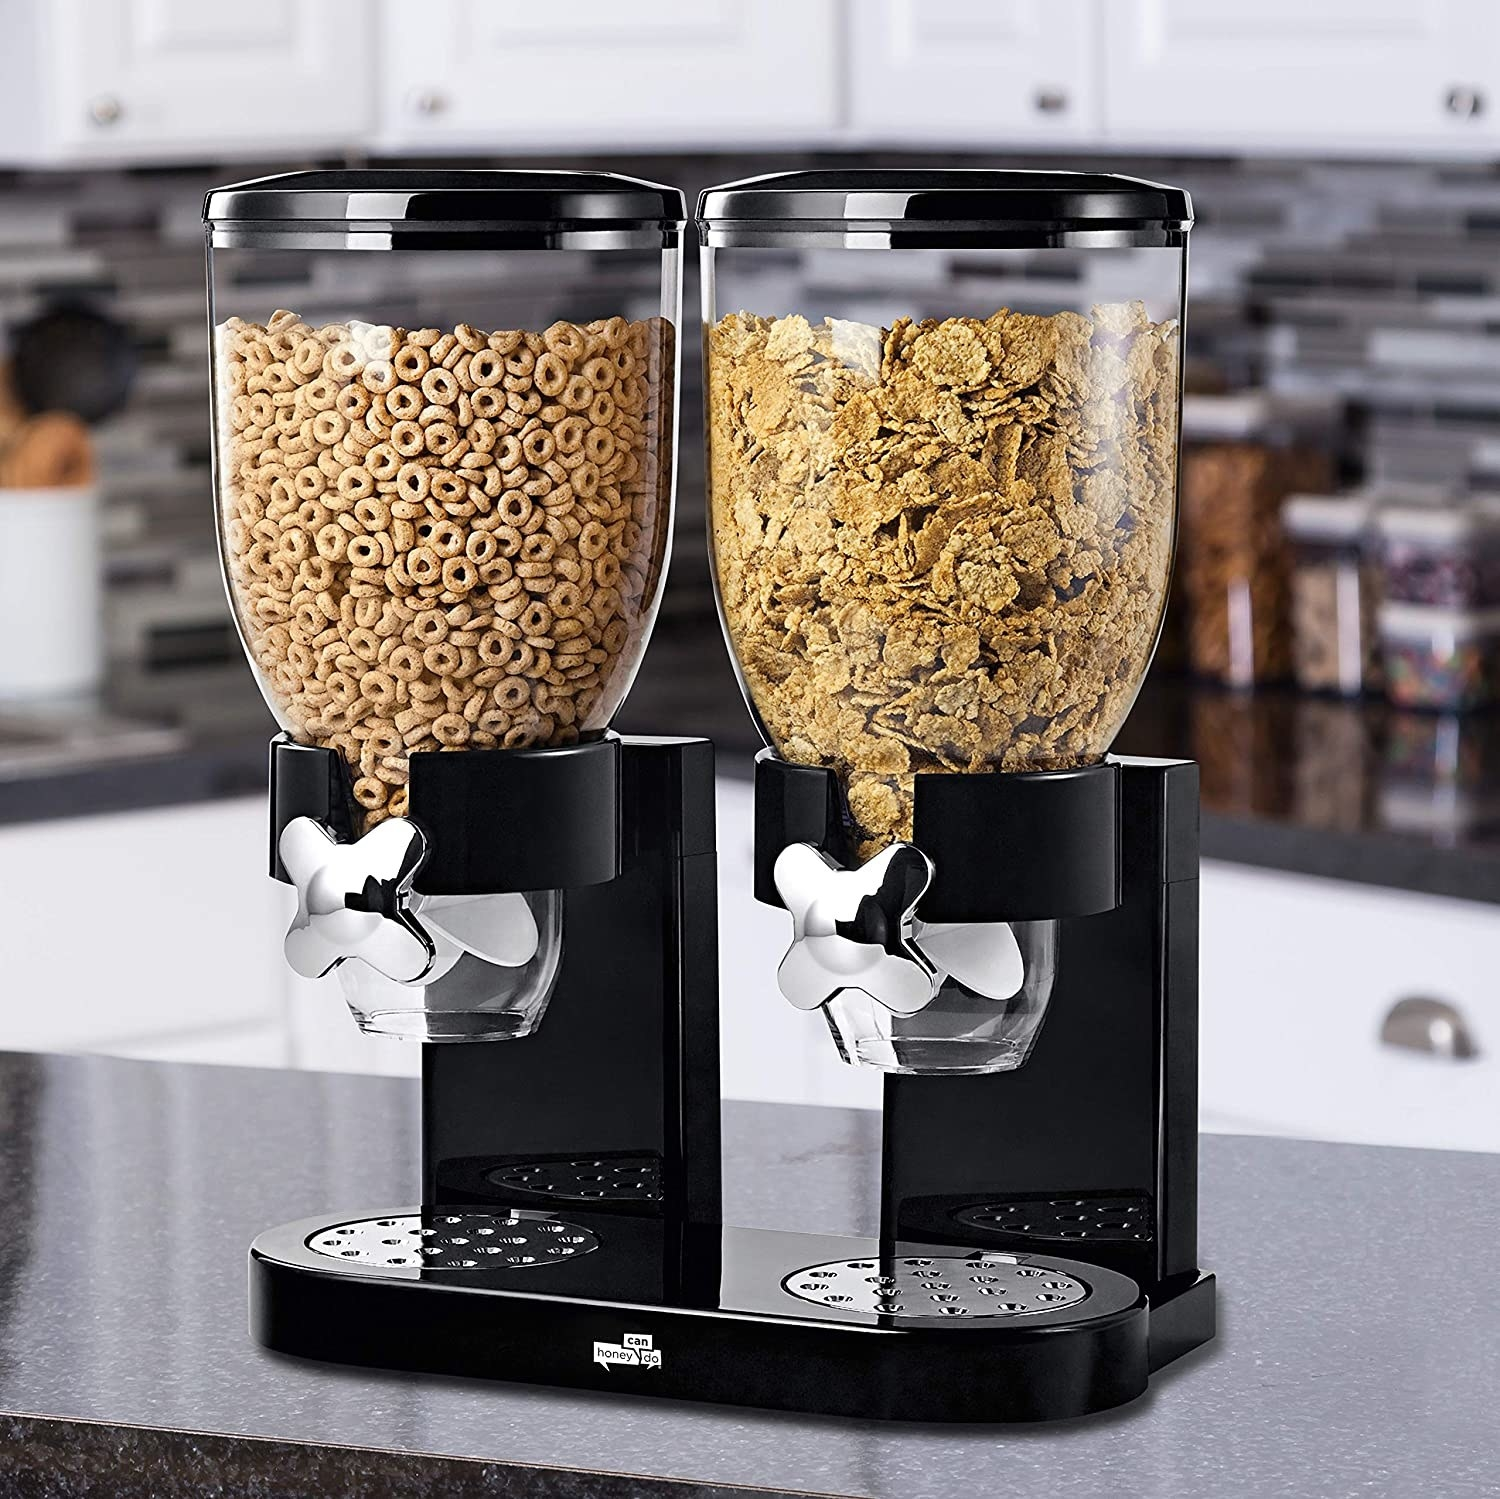 the cereal dispenser with two kinds of cereal in it